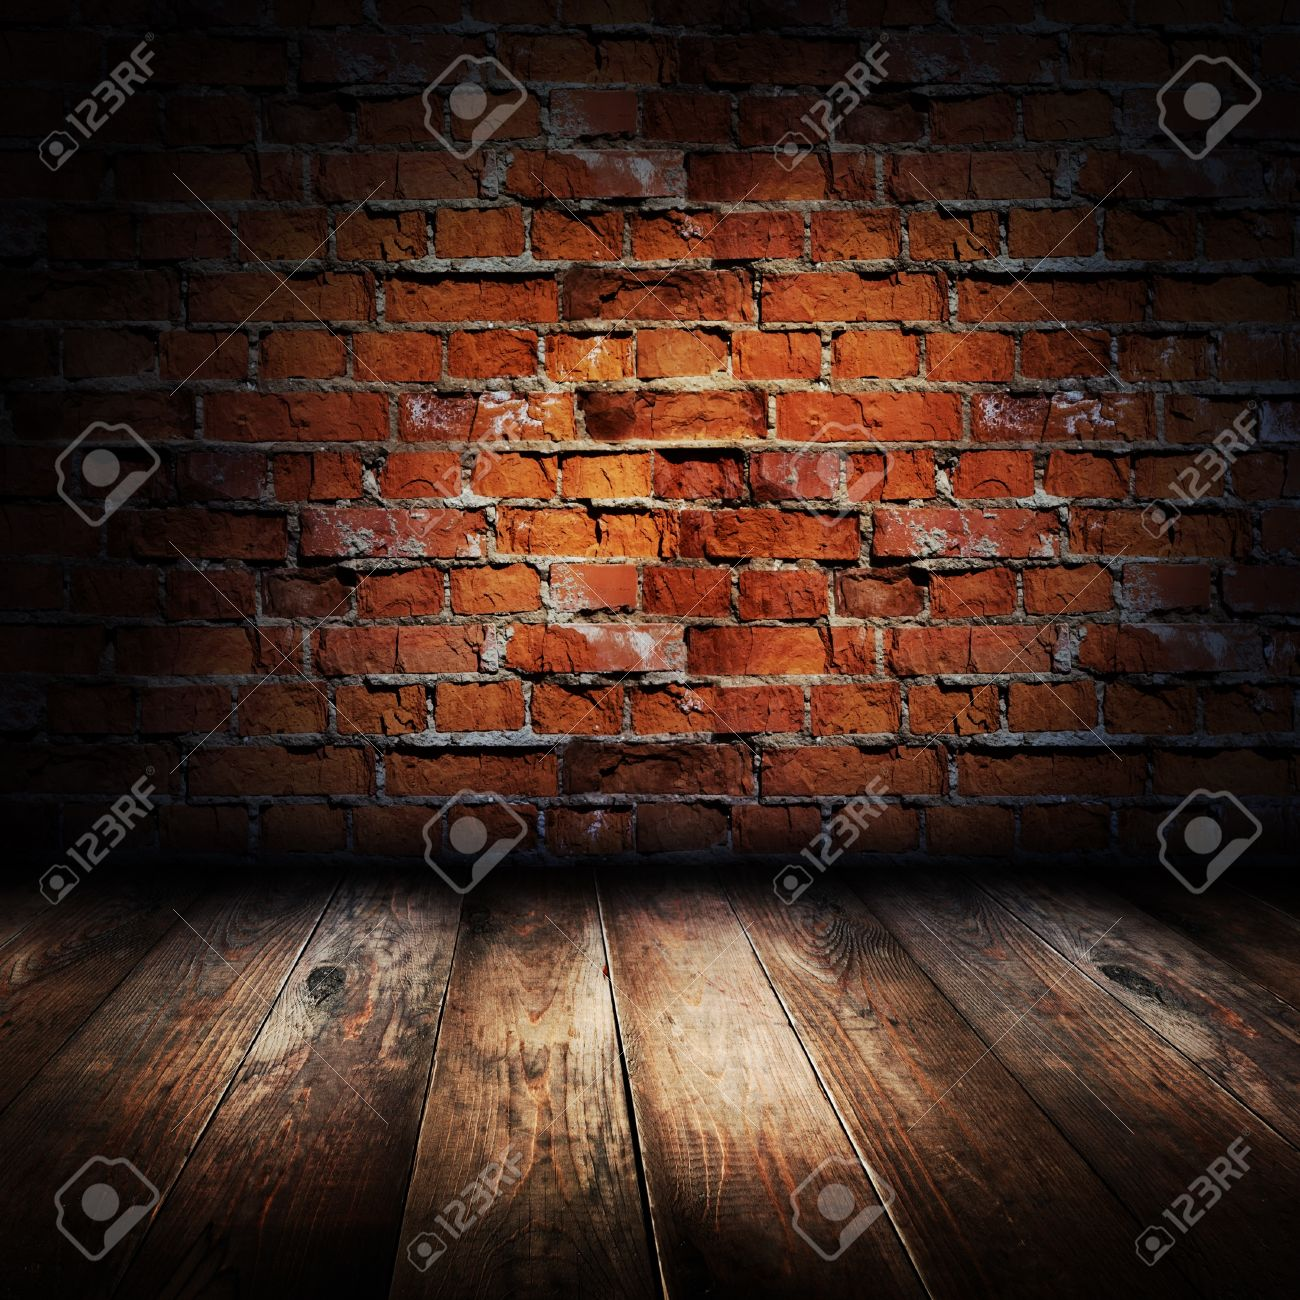 Interior of rural house. Brick wall and wooden floor scene. Stock Photo - 9390322